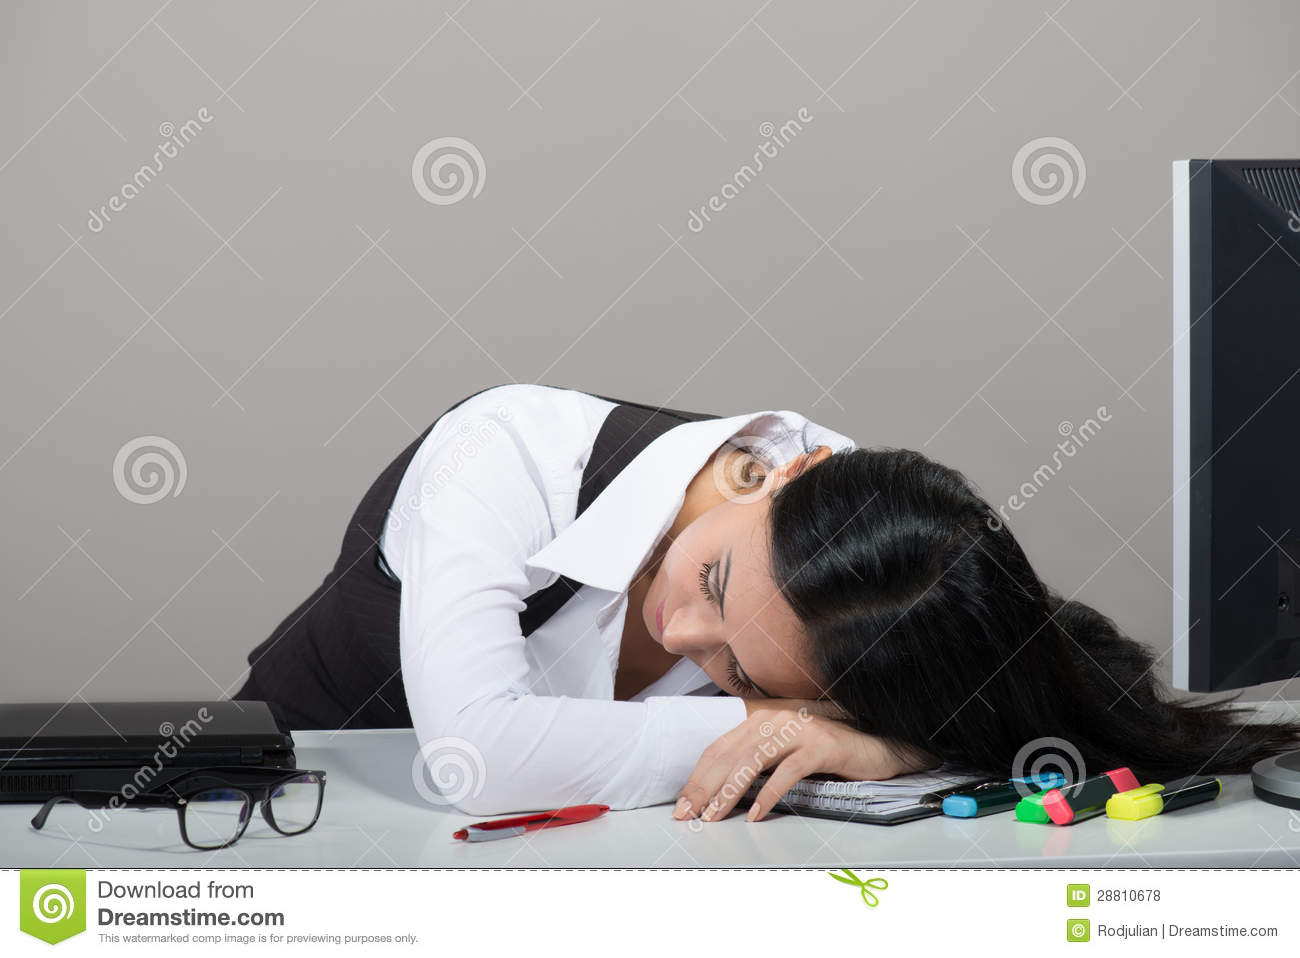 Portrait of woman sleeping on her workplace